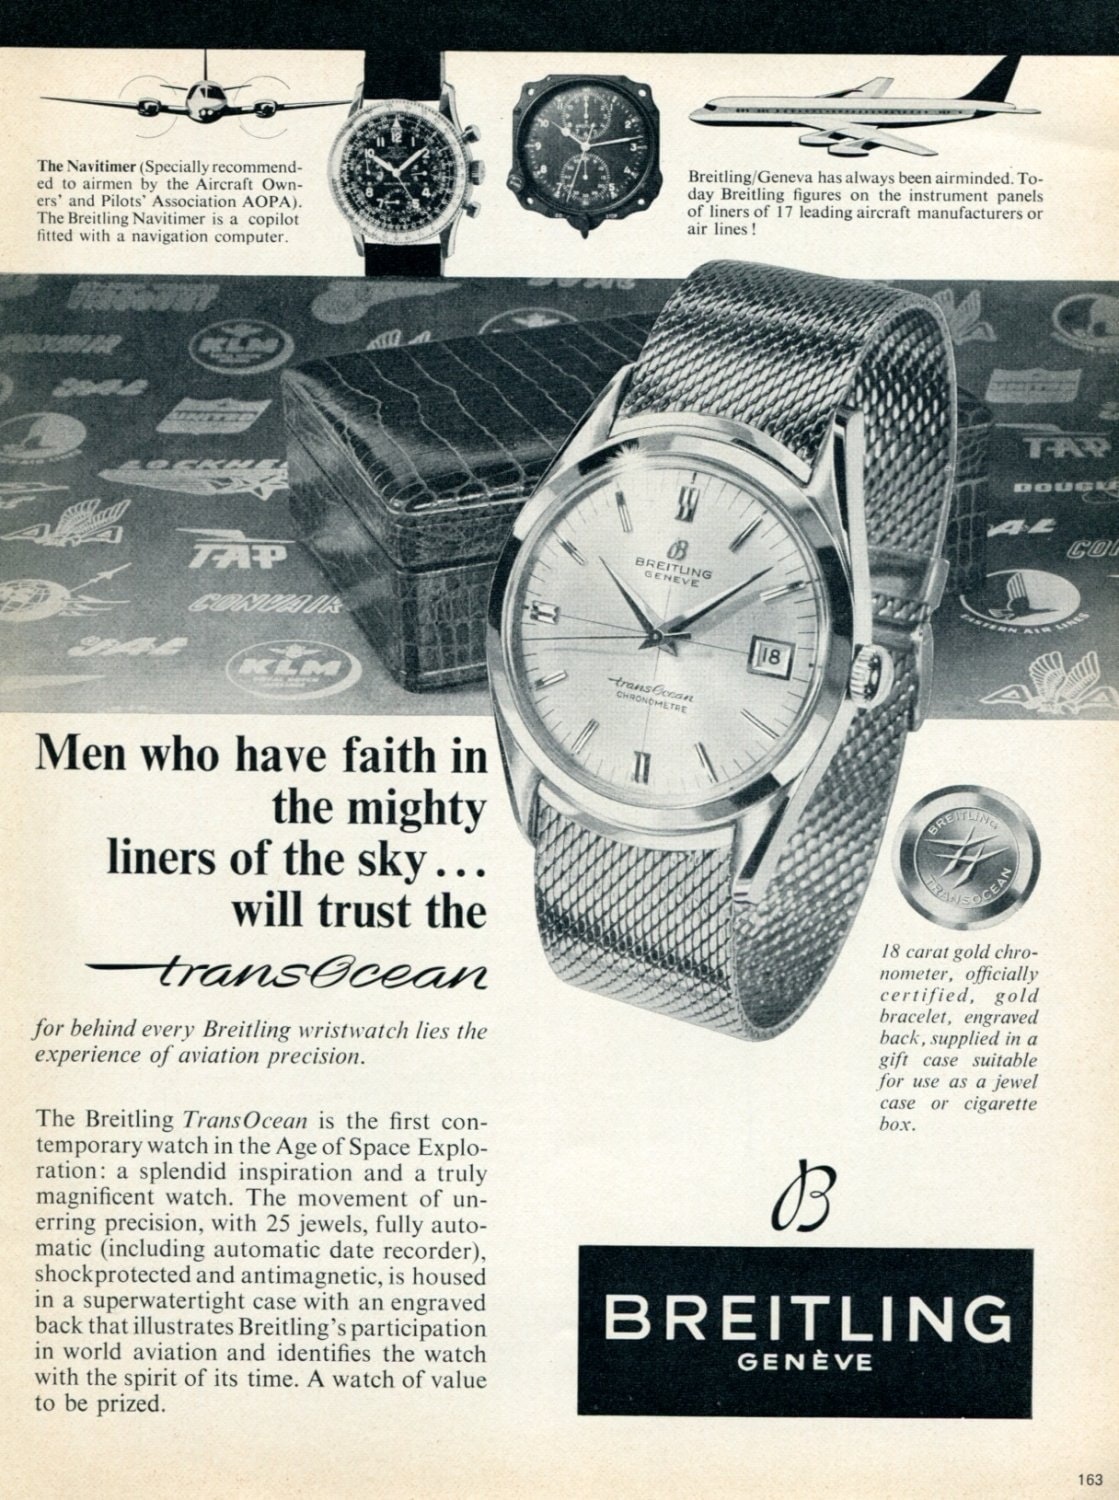 Breitling transocean ads Bring a Loupe: A Full Set Rolex GMT-Master II Ref. 16760, An IWC Ingenieur Ref. 866, A Square Vacheron Constantin 222, And More Bring a Loupe: A Full Set Rolex GMT-Master II Ref. 16760, An IWC Ingenieur Ref. 866, A Square Vacheron Constantin 222, And More Breitling transocean